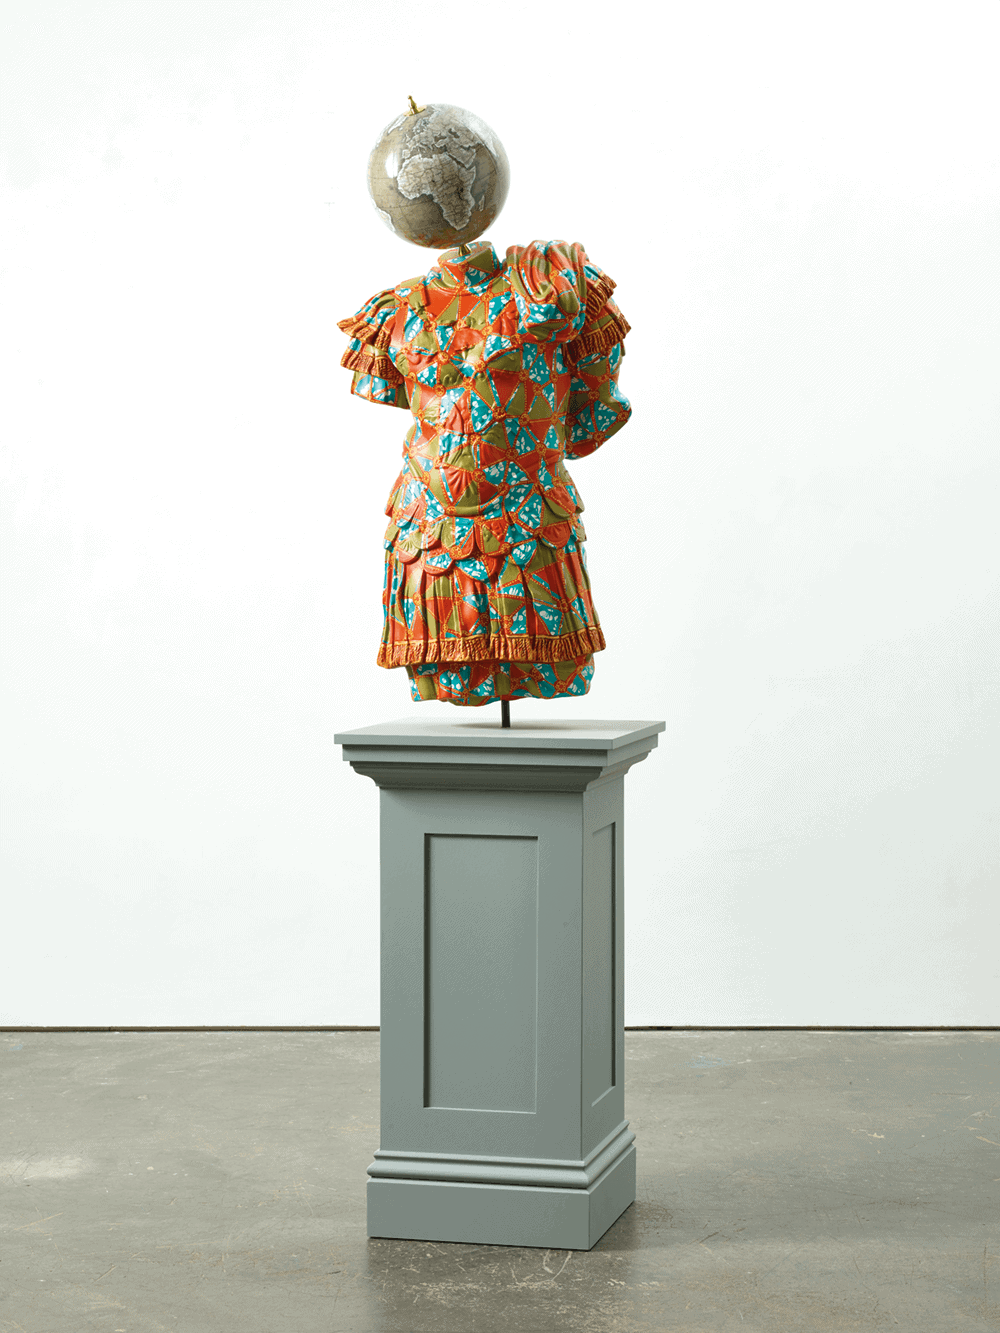 Yinka Shonibare MBE, Julio-Claudian, A Marble Torso of Emperor, 2018. Fibreglass sculpture, hand-painted with Batik pattern, and steelbase plate or plinth. Courtesy of the artist & Goodman Gallery.